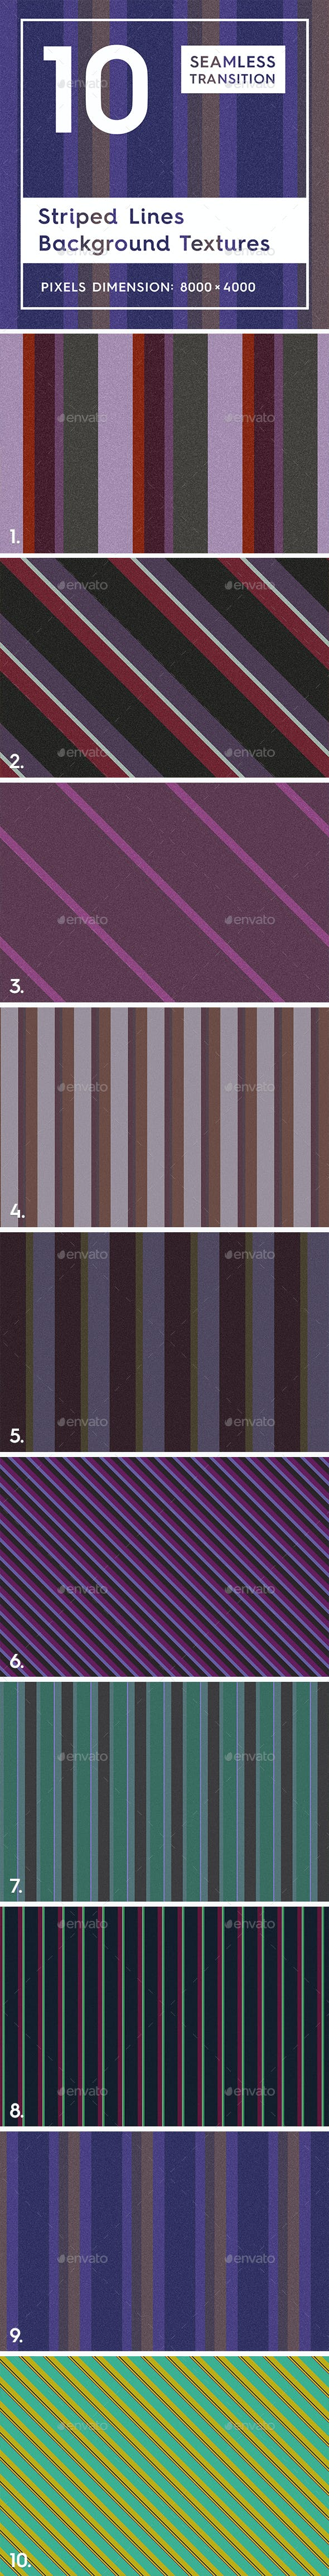 10 Striped Lines Background Textures - 3DOcean Item for Sale